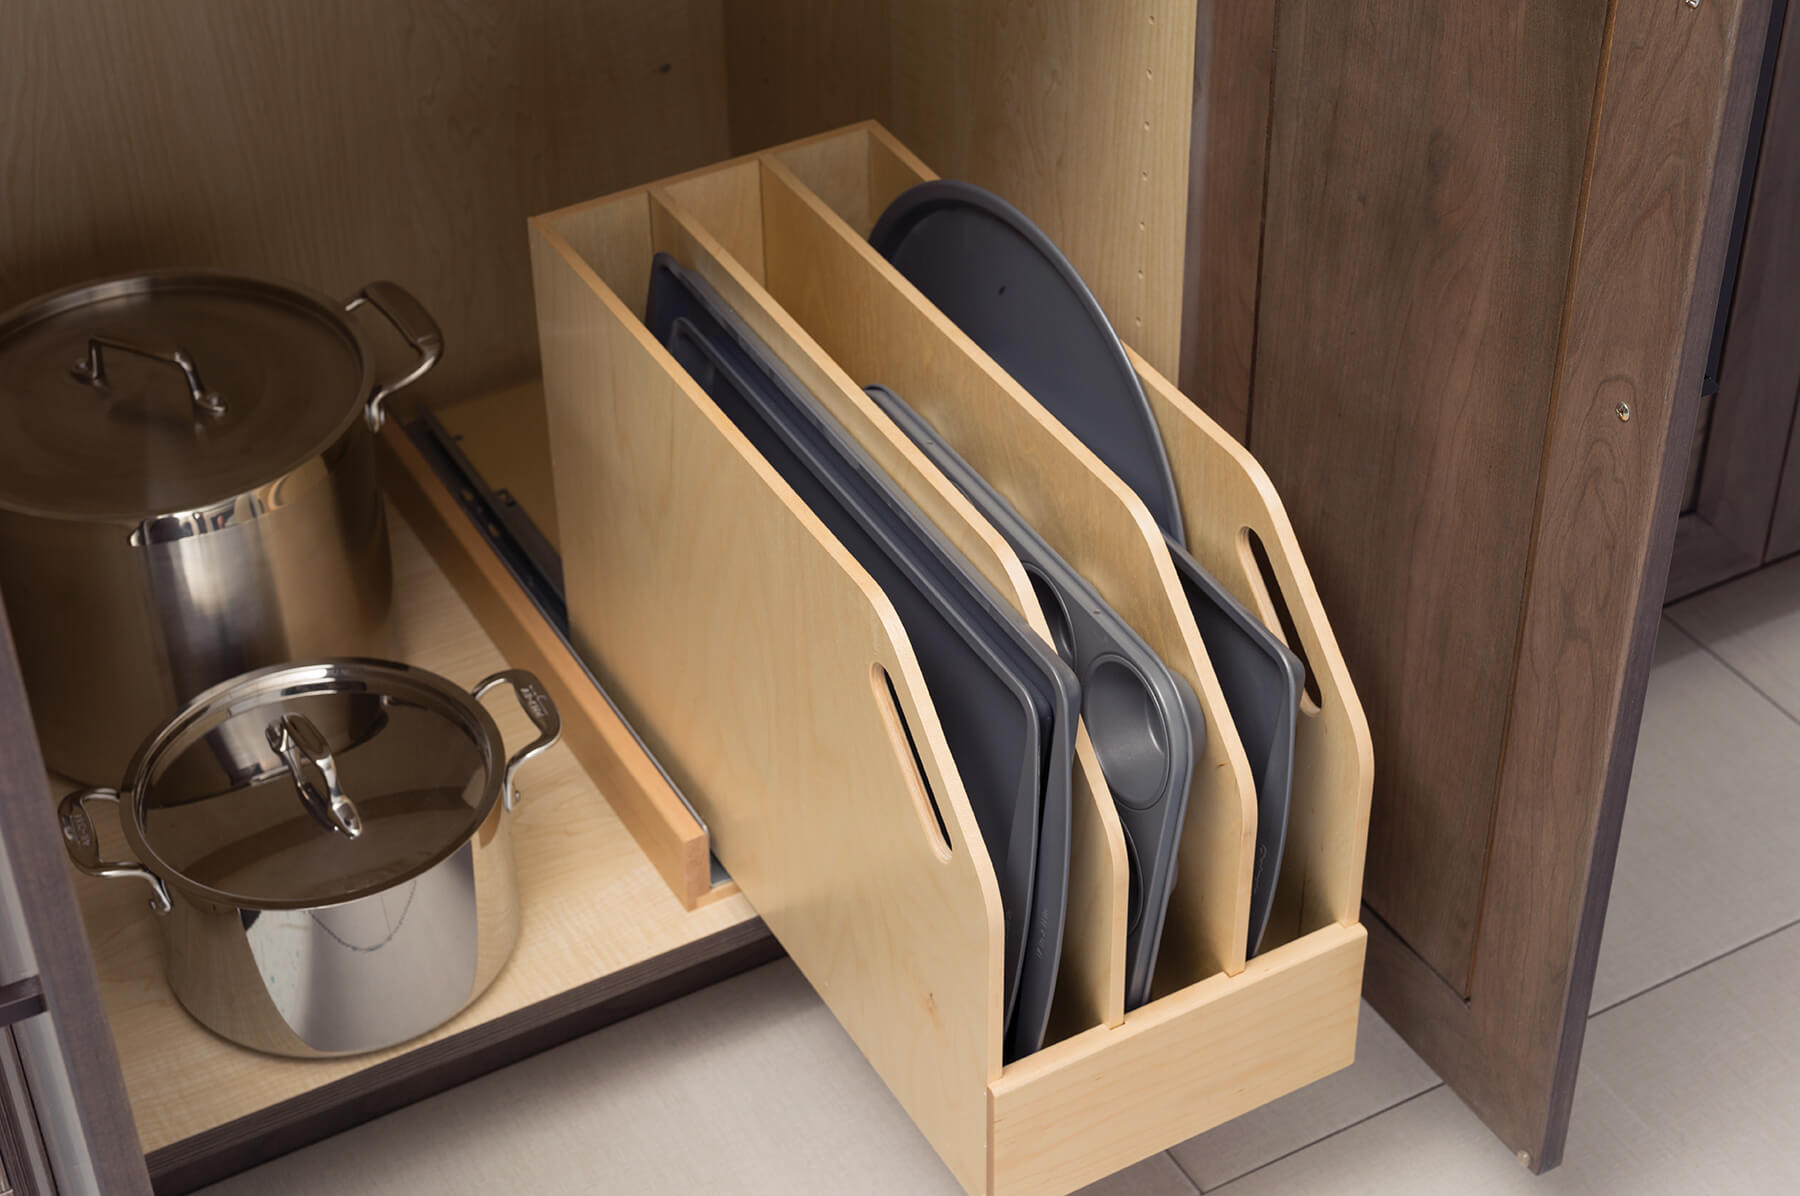 Trays, Pans, and cutting boards can be stored in a roll-out Tray Divider Pull-Out for practical and convenient use of space in a base cabinet.